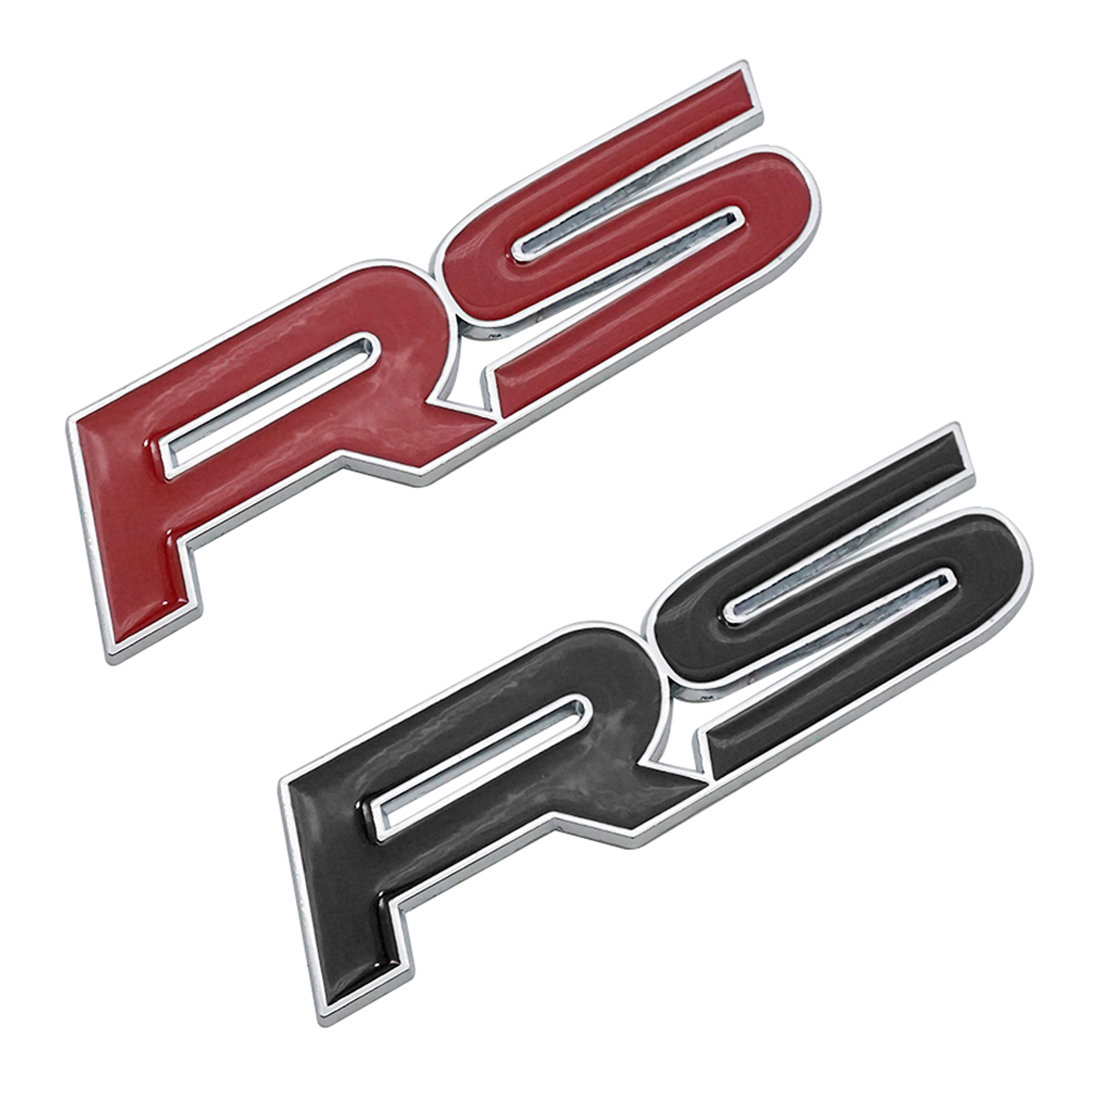 Dewtreetali Metal RS Emblem Badge Car Styling Sticker for Focus Chevrolet Cruze Kia Sportage Skoda Octavia Mazda VW Hyundai Opel 3d ss car front grille emblem badge stickers accessories styling for jaguar honda chevrolet camaro cruze malibu sail captiva kia